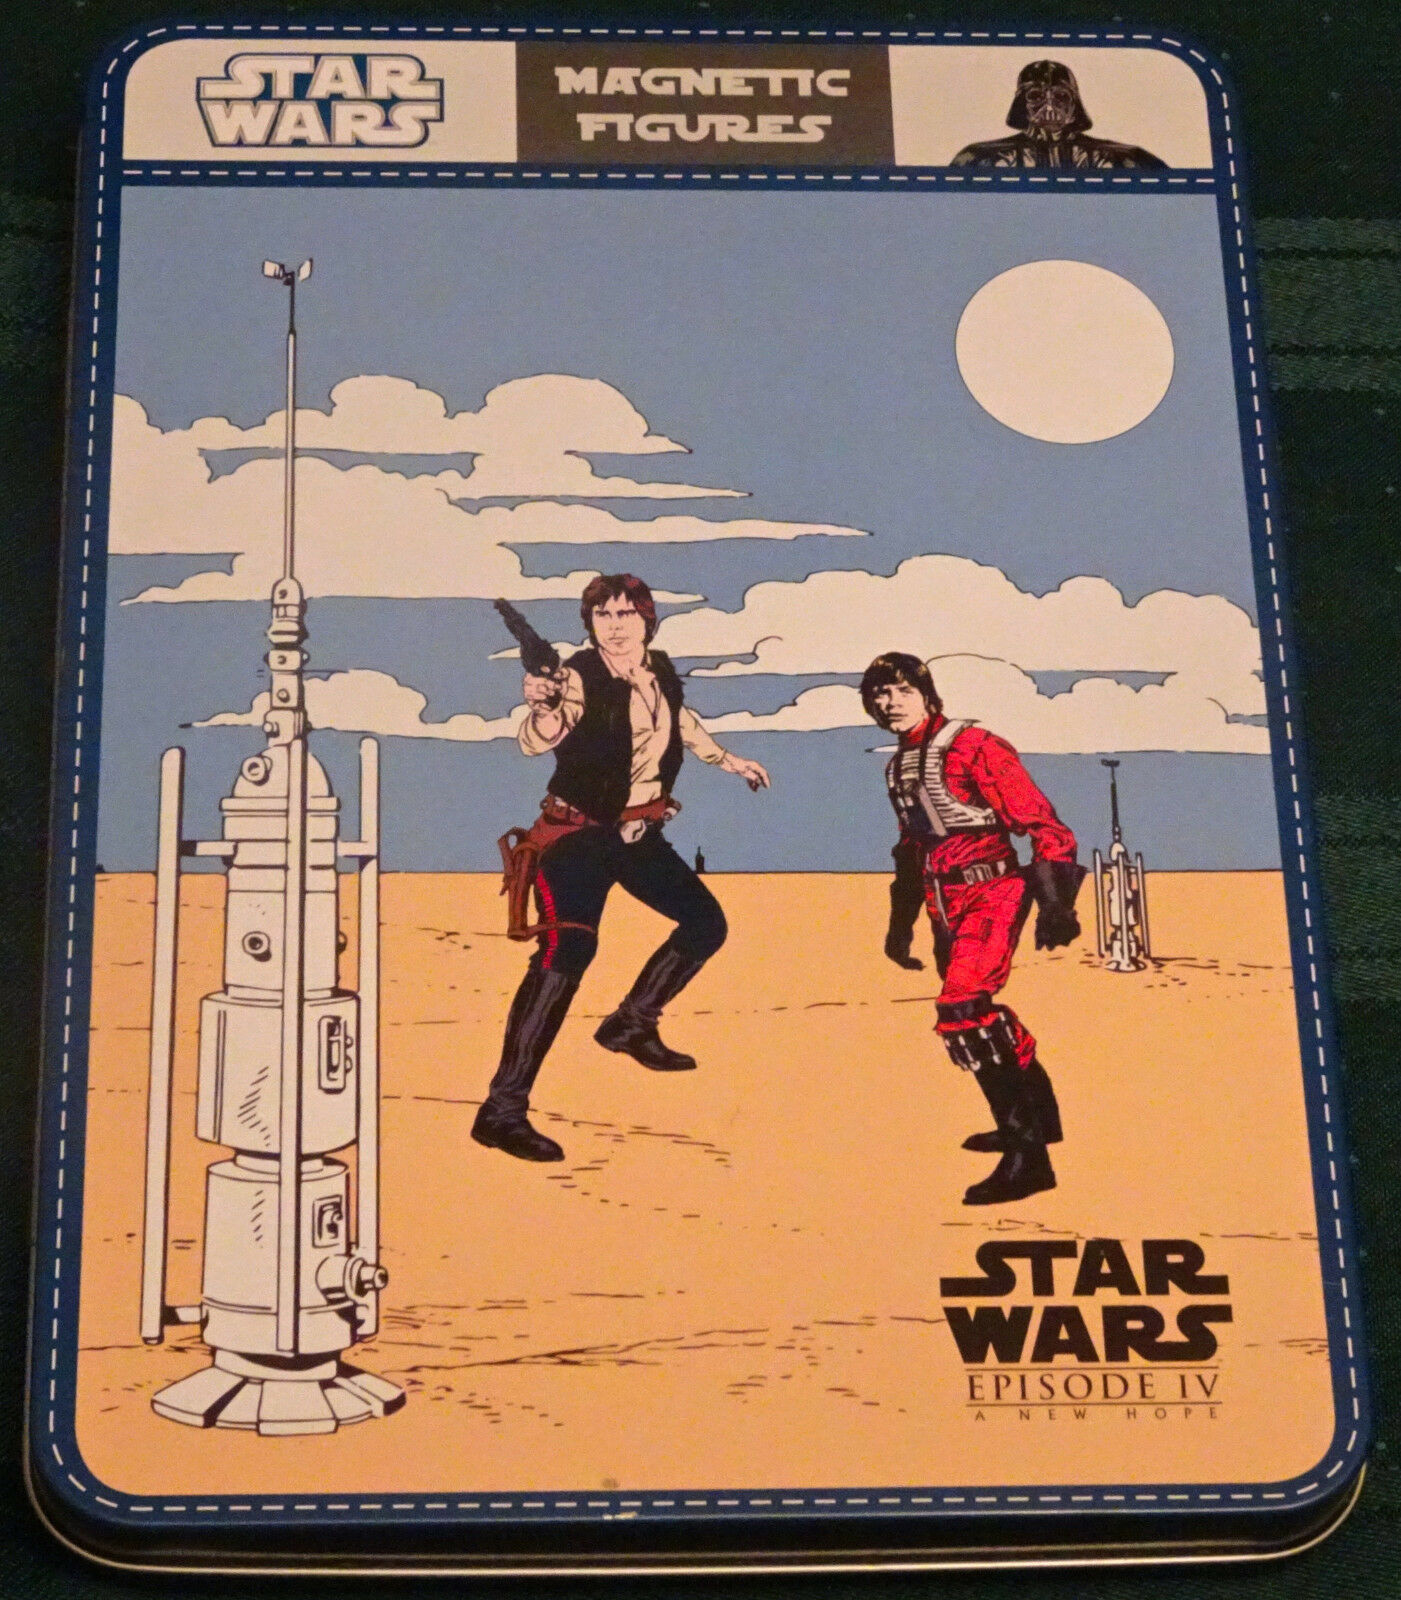 Star Wars  A New Hope Magnetic Figures Scene Game by Pottery Barn Kids - RARE